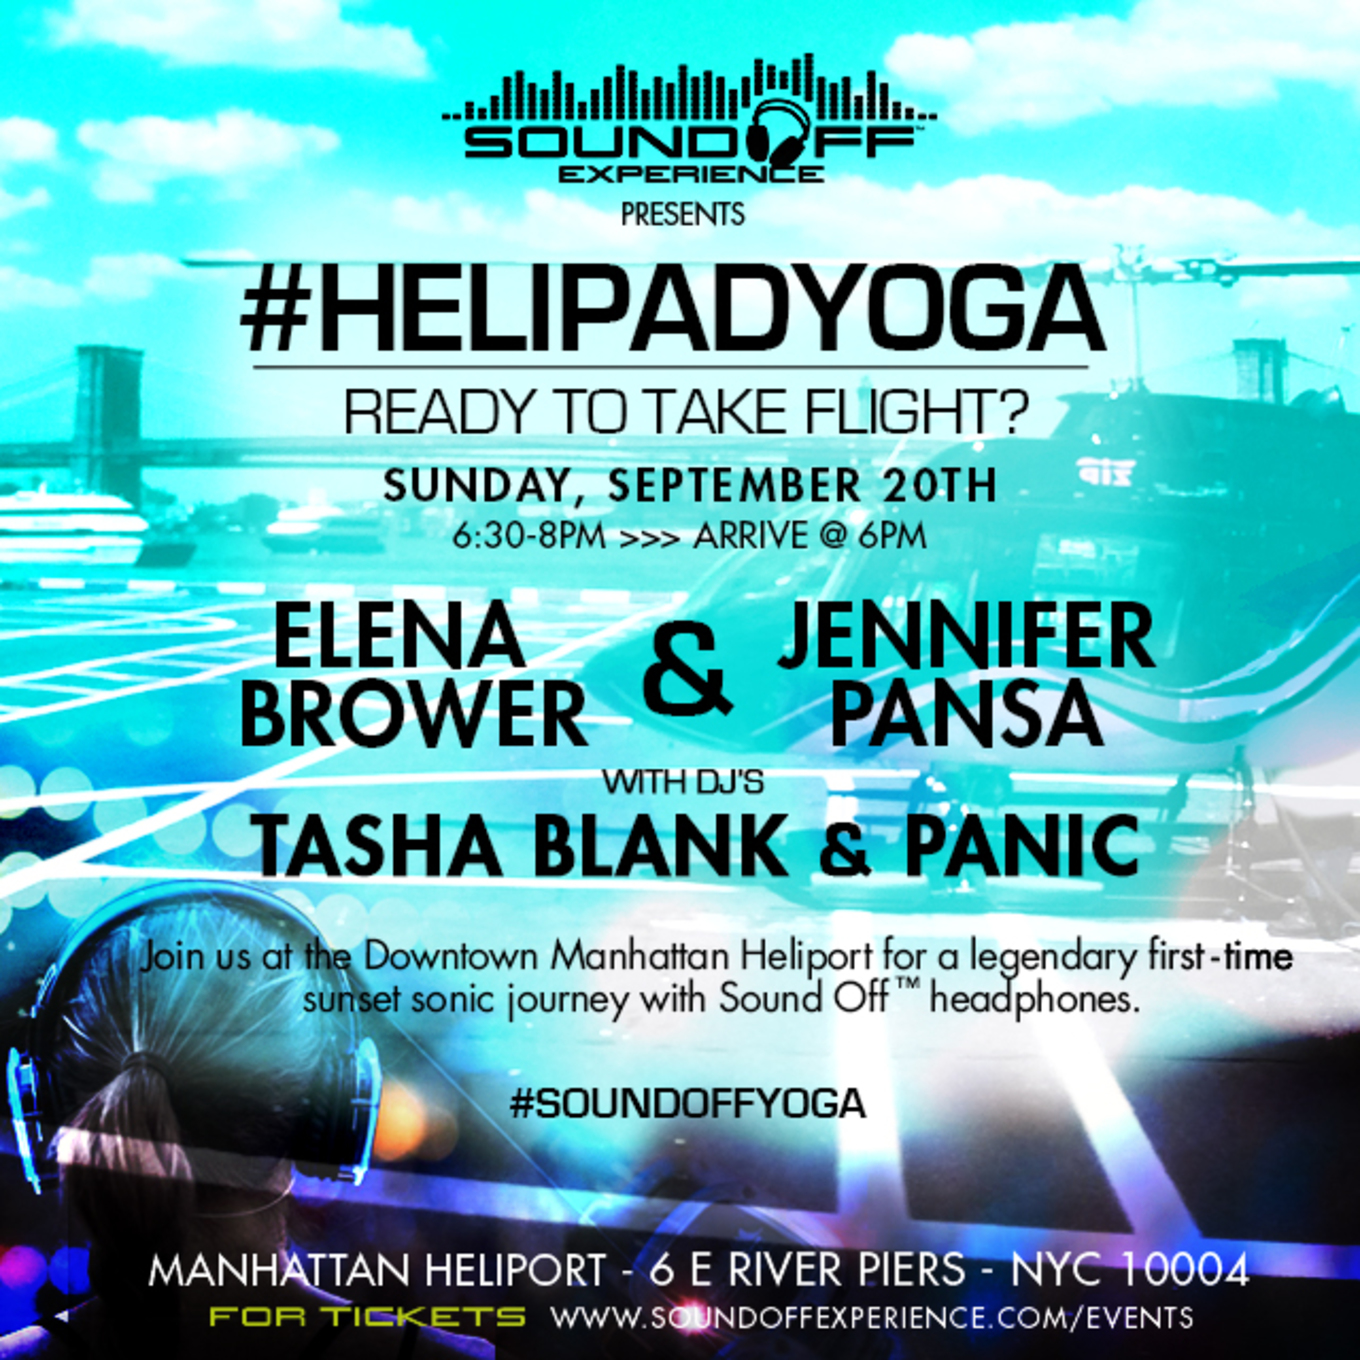 Sound Off Helipad Yoga Tickets Downtown Manhattan Heliport New York Ny September 20 2015